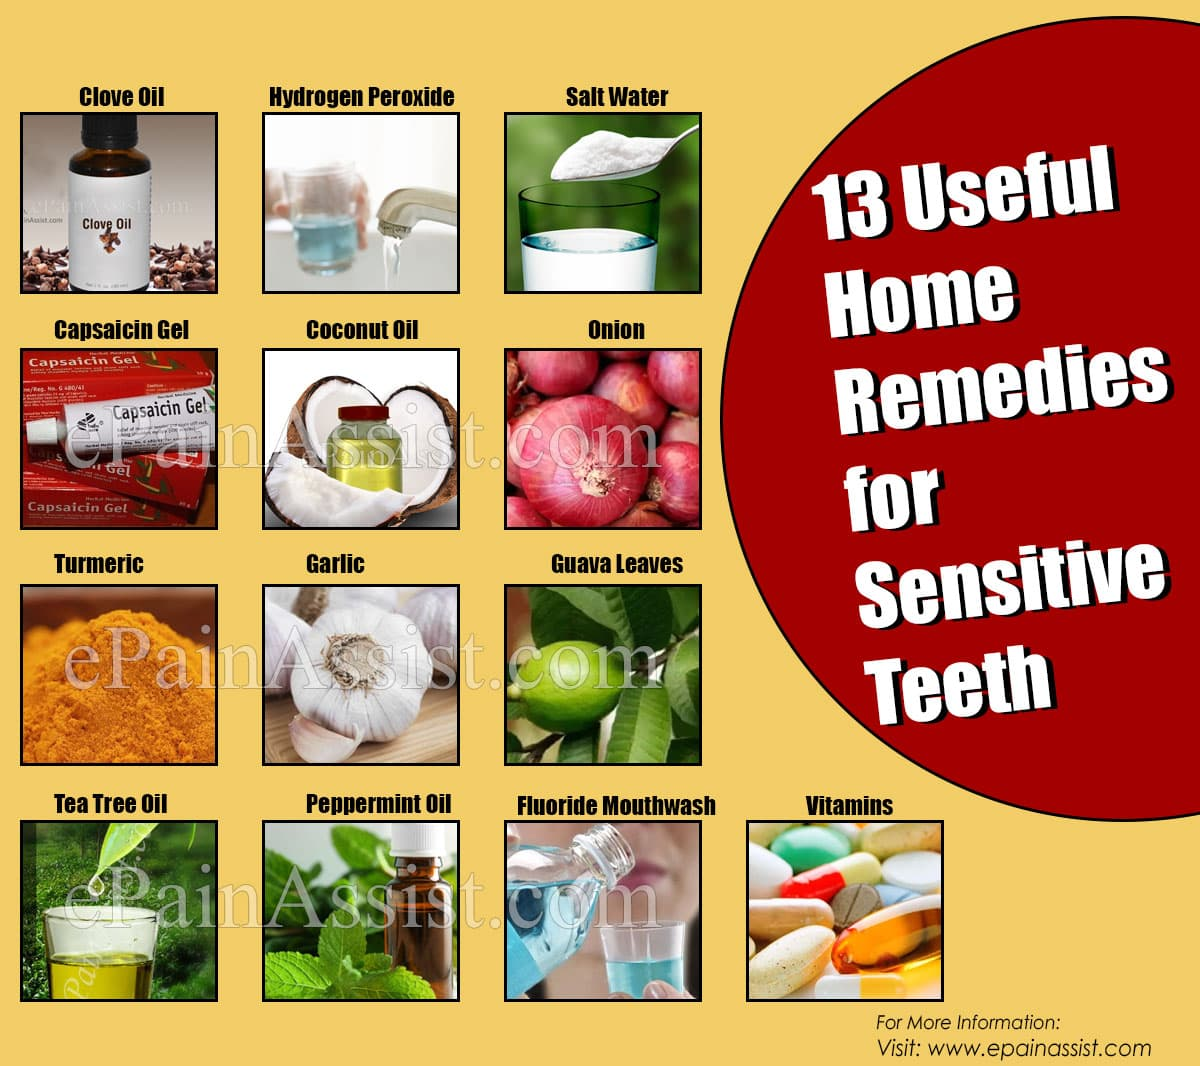 13 Useful Home Remedies for Sensitive Teeth